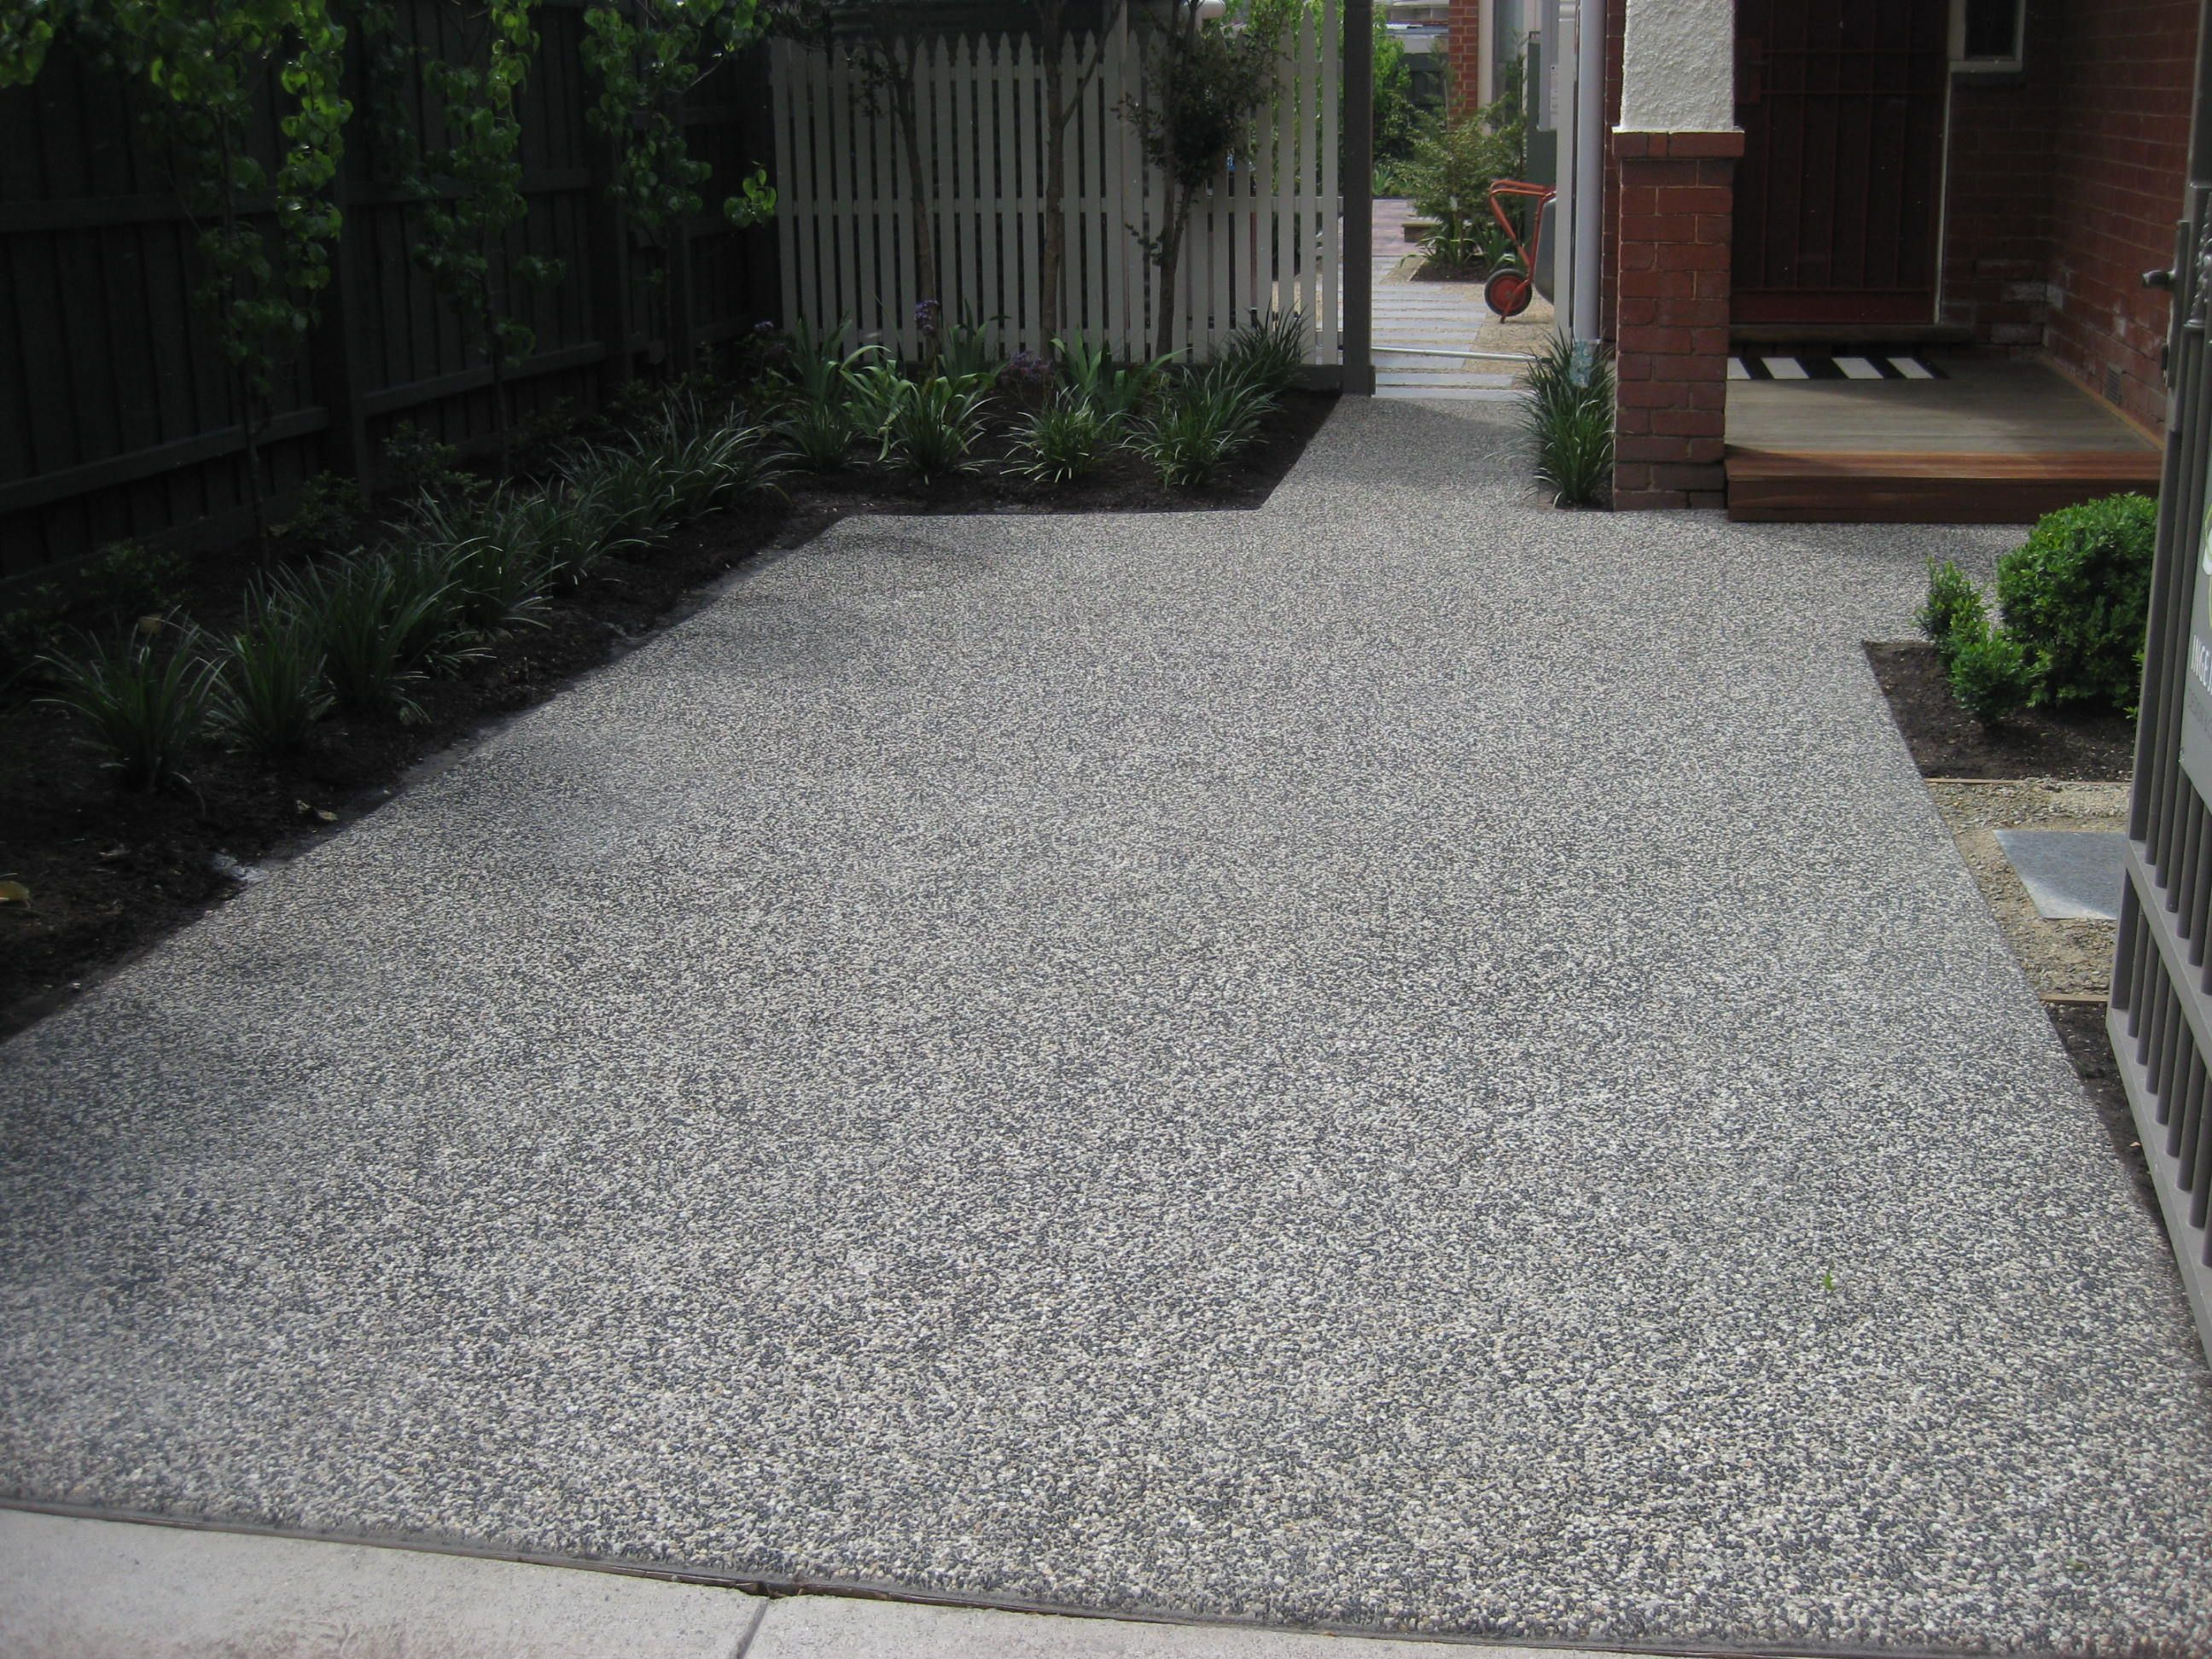 Exposed aggregate driveway pictures google search new for New concrete driveway